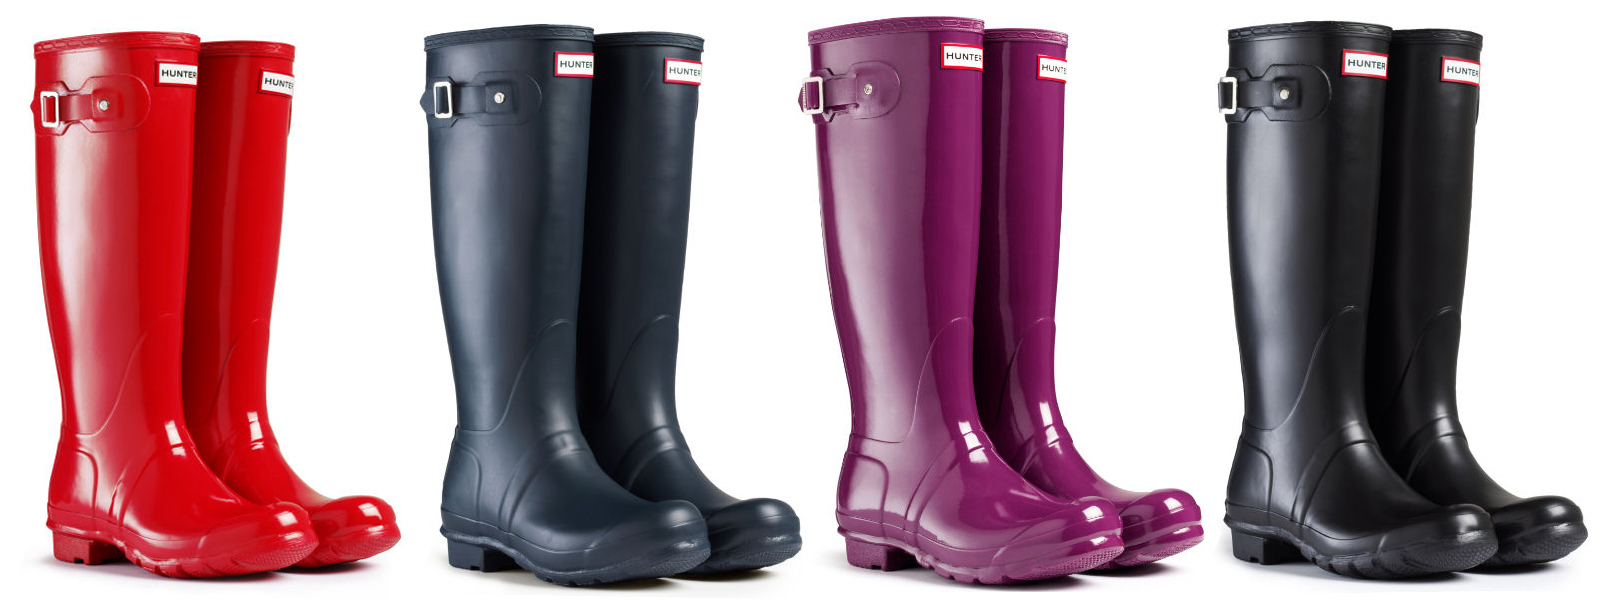 Hunter Original Wellington Boots at Philip Morris and Son